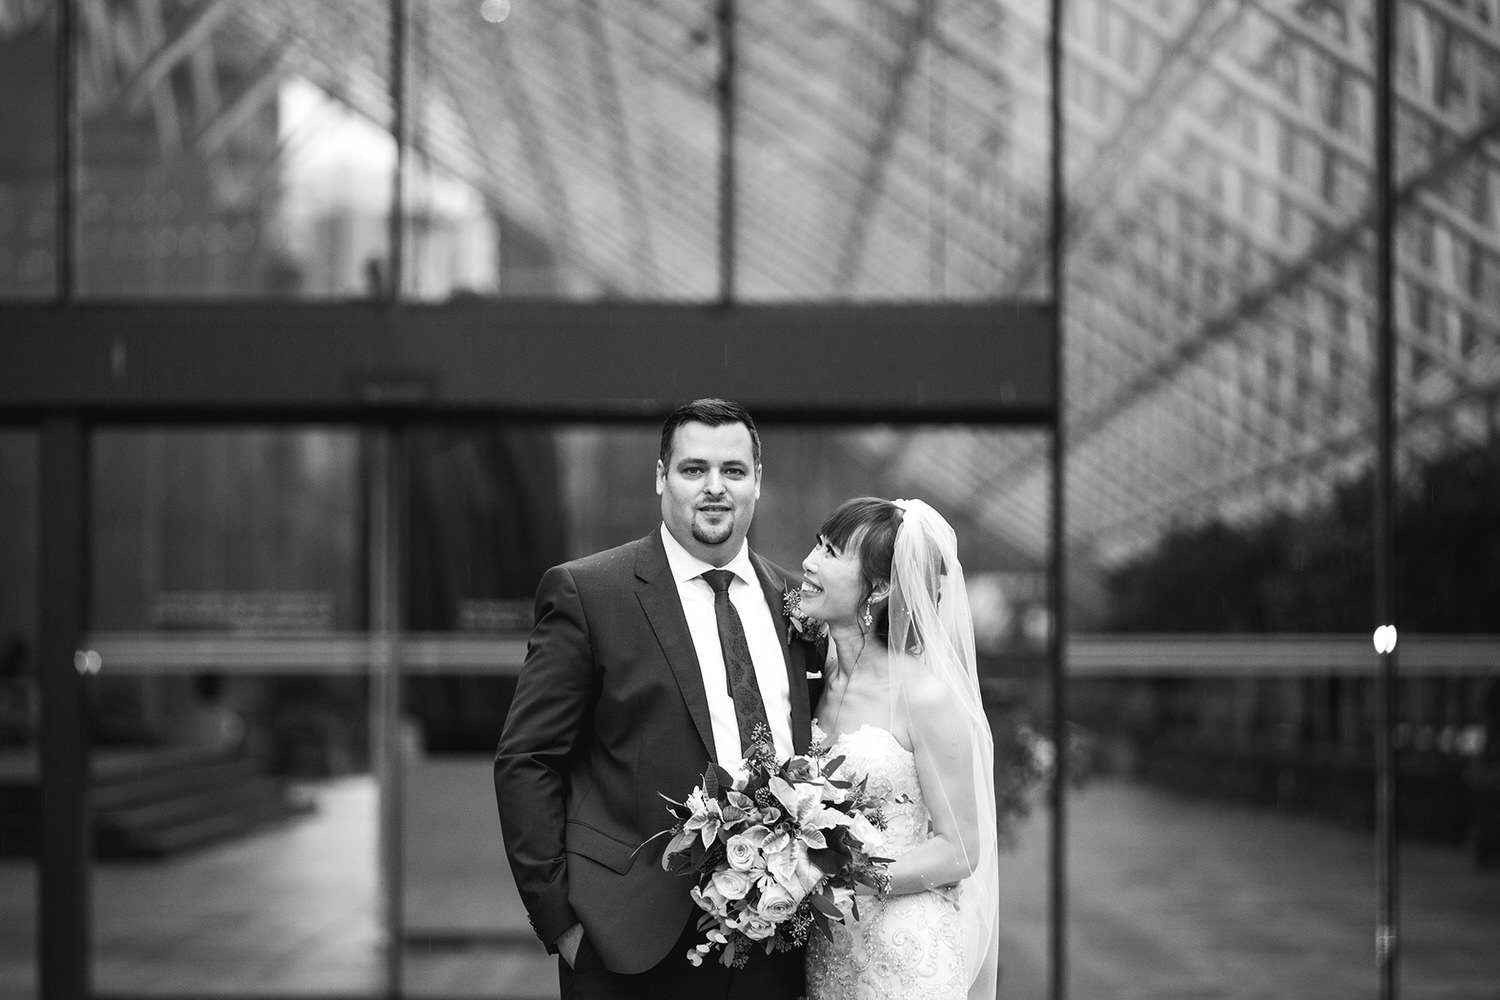 Law Courts Wedding photography